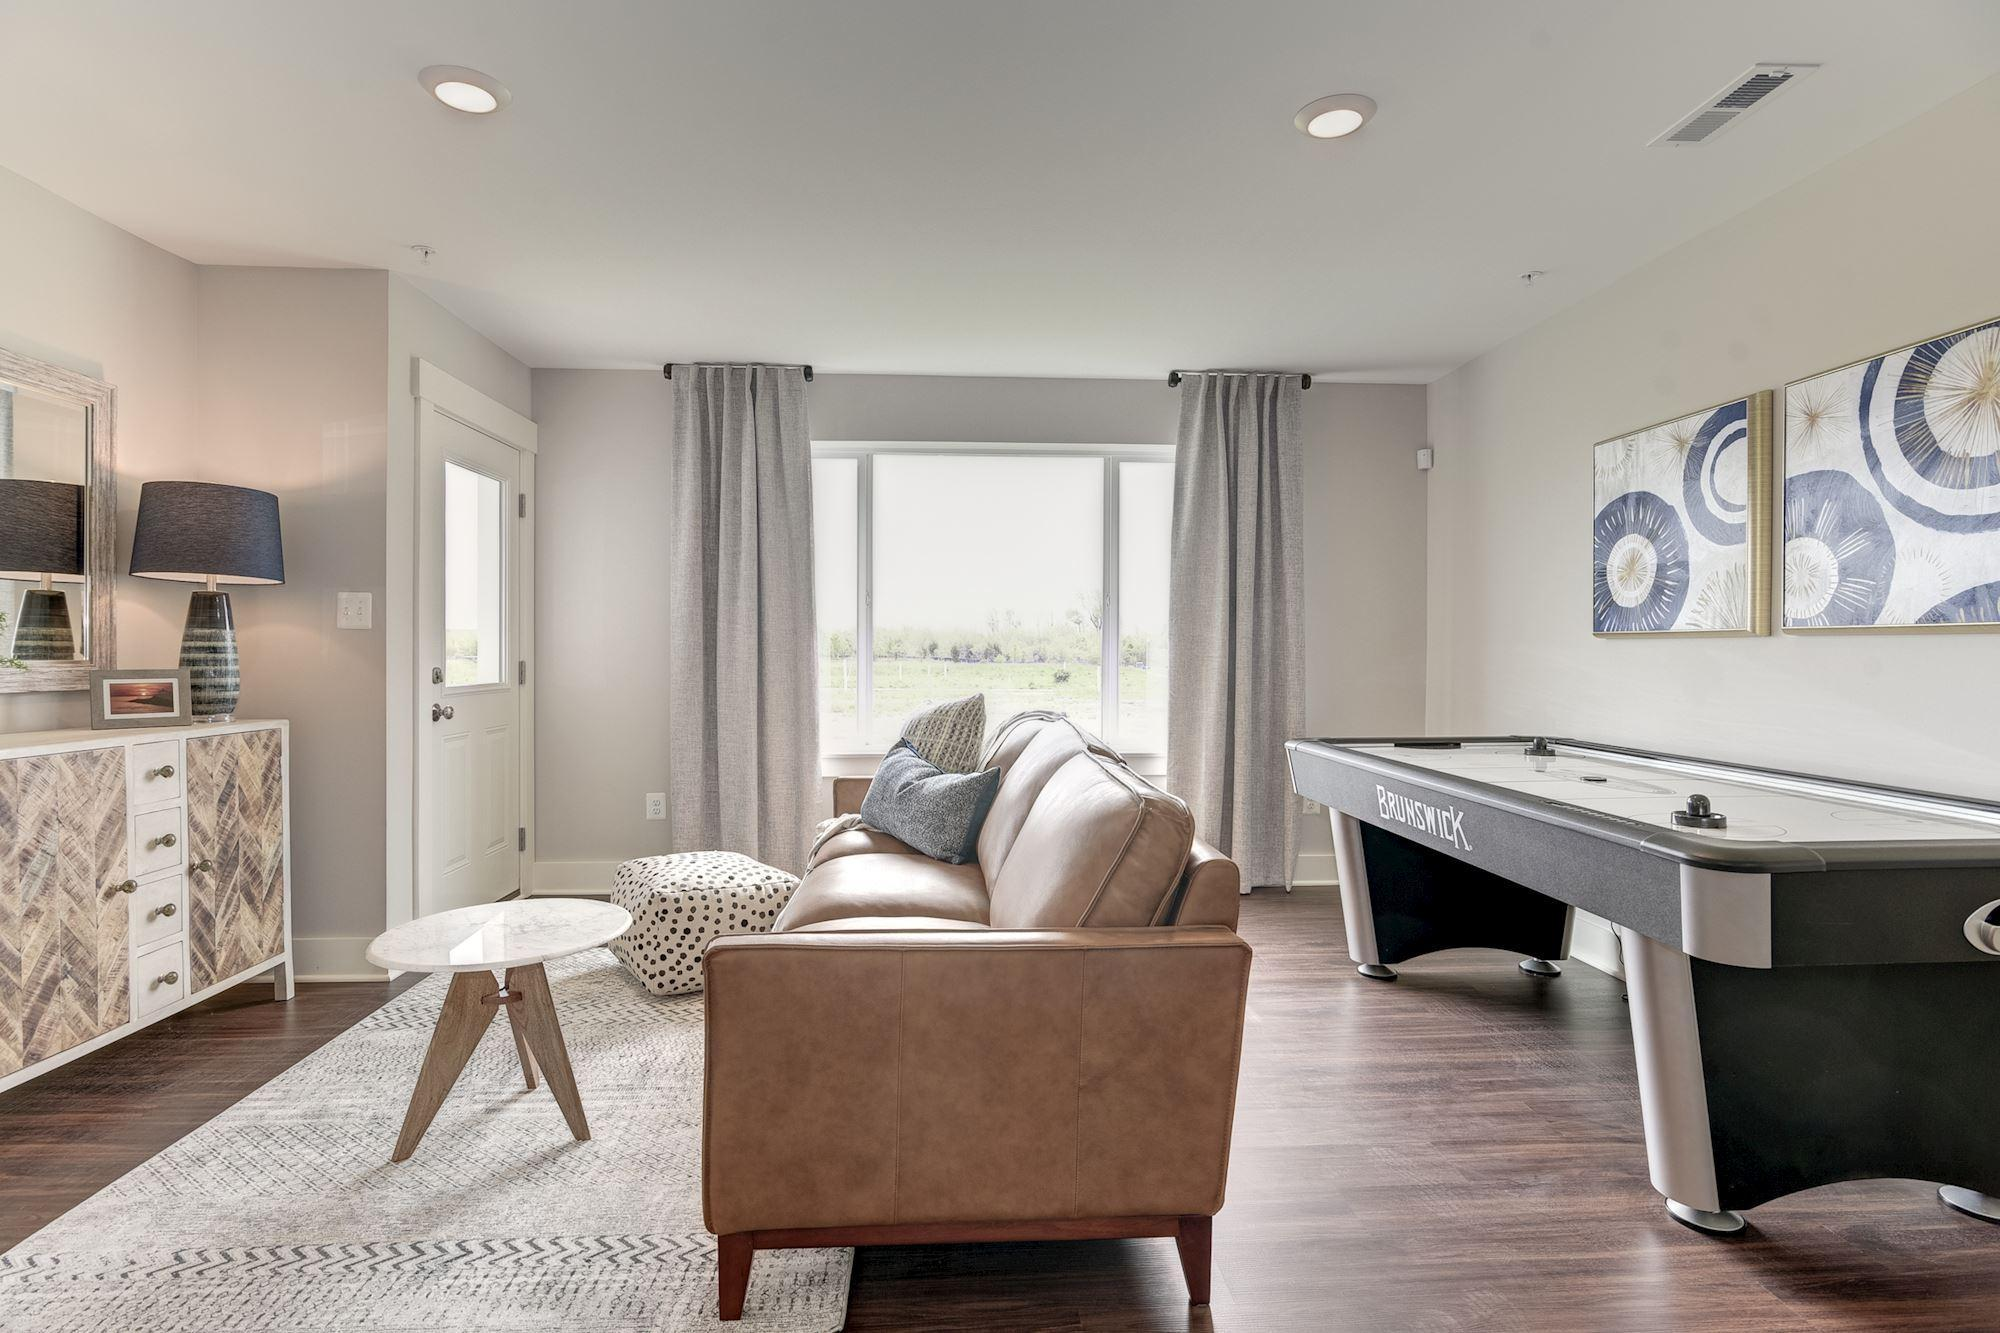 Living Area featured in the Townhome-Interior Unit By Baldwin Homes Inc. in Eastern Shore, MD